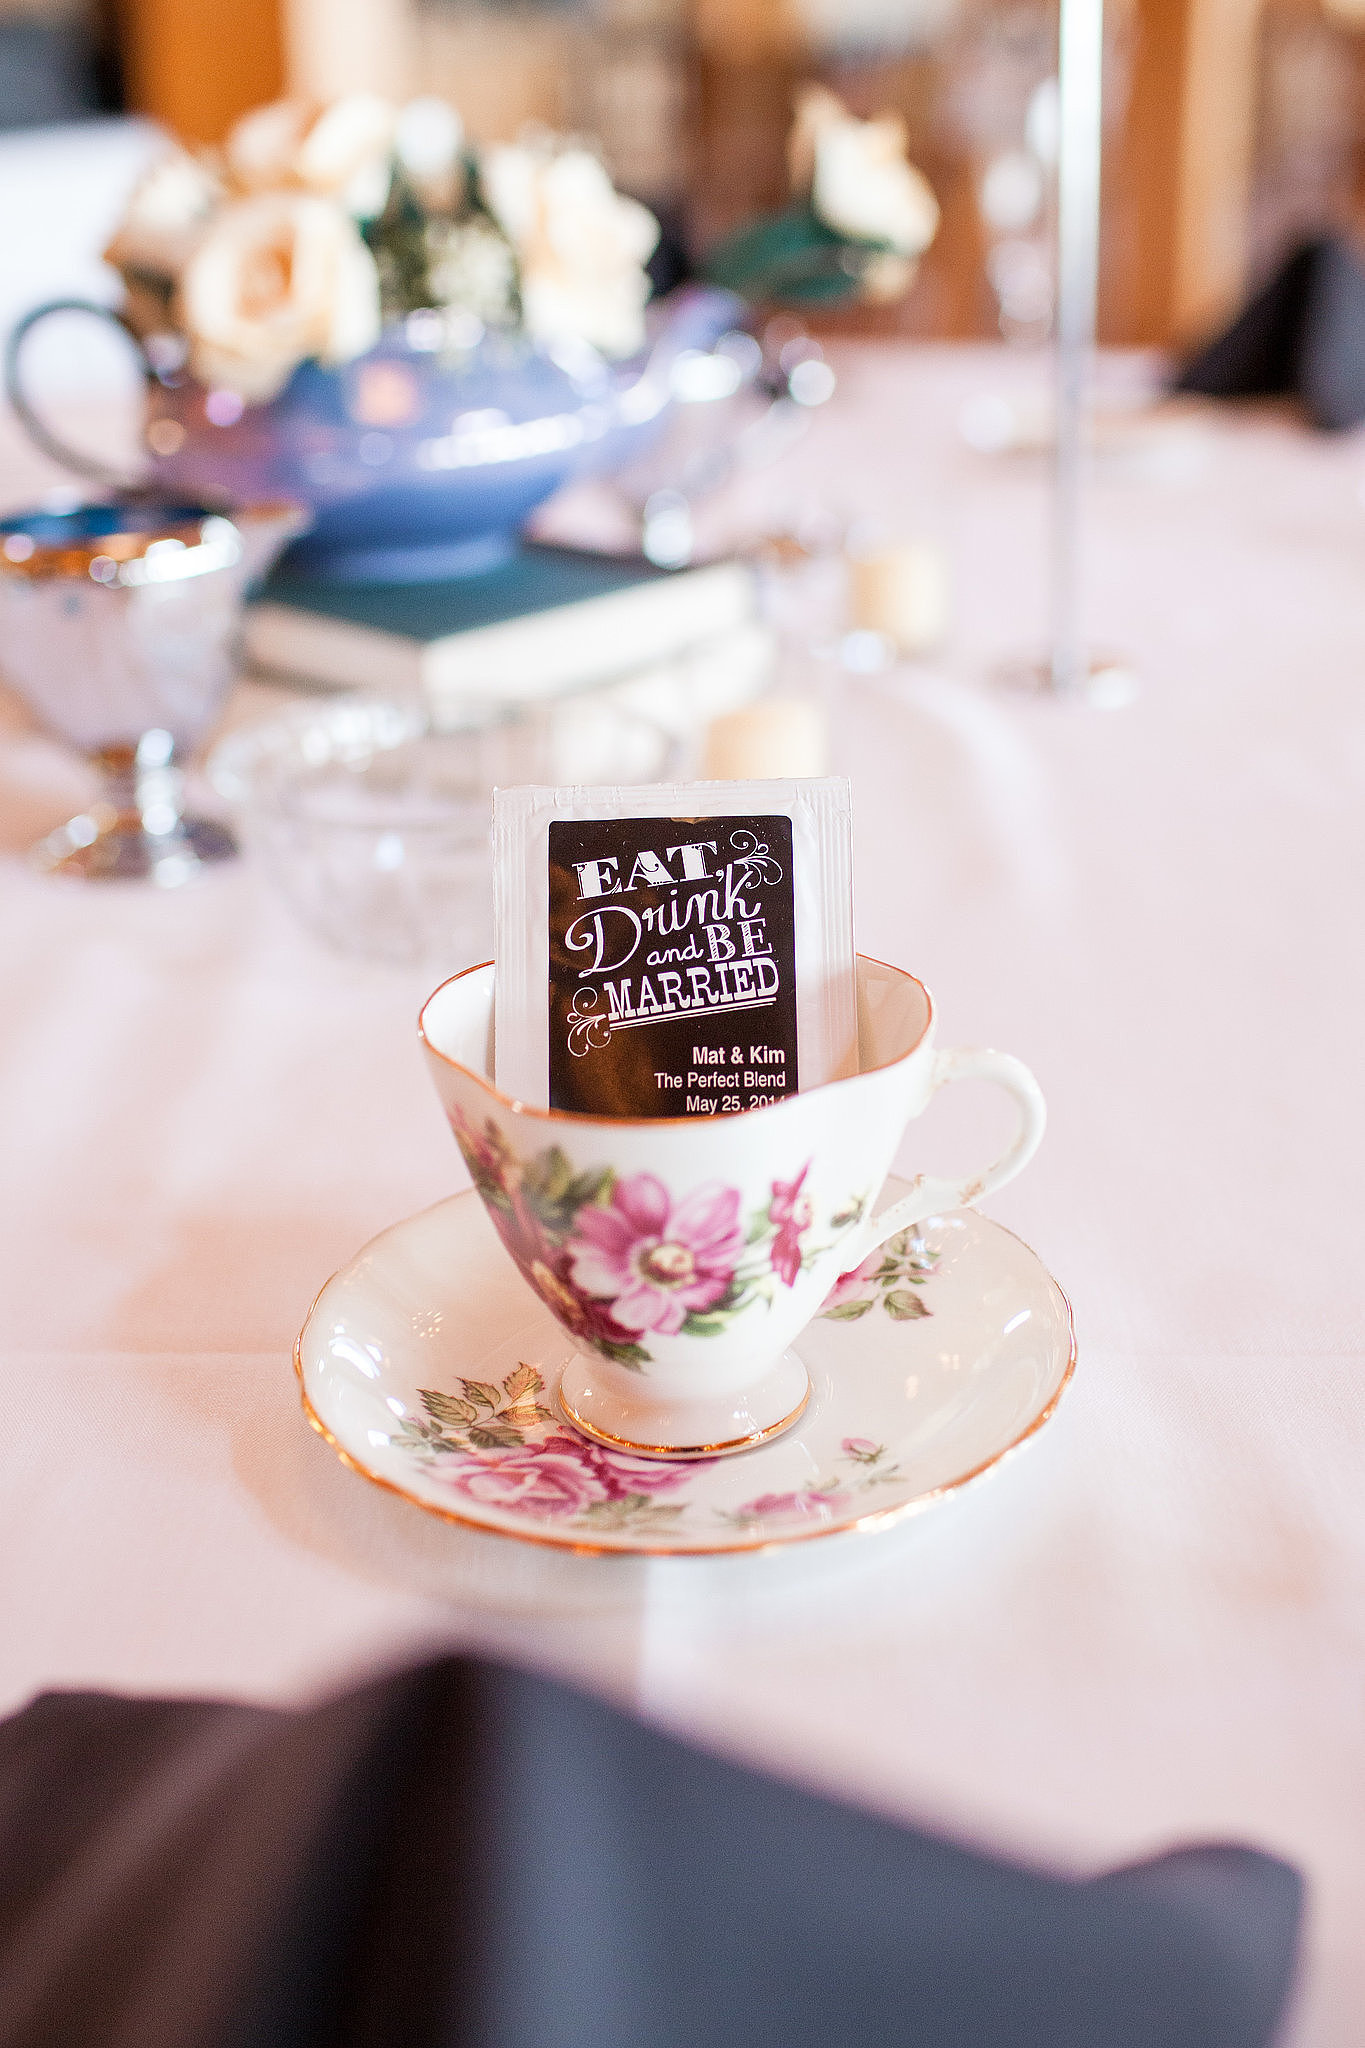 Try Afternoon Tea Instead of a Rehearsal Dinner